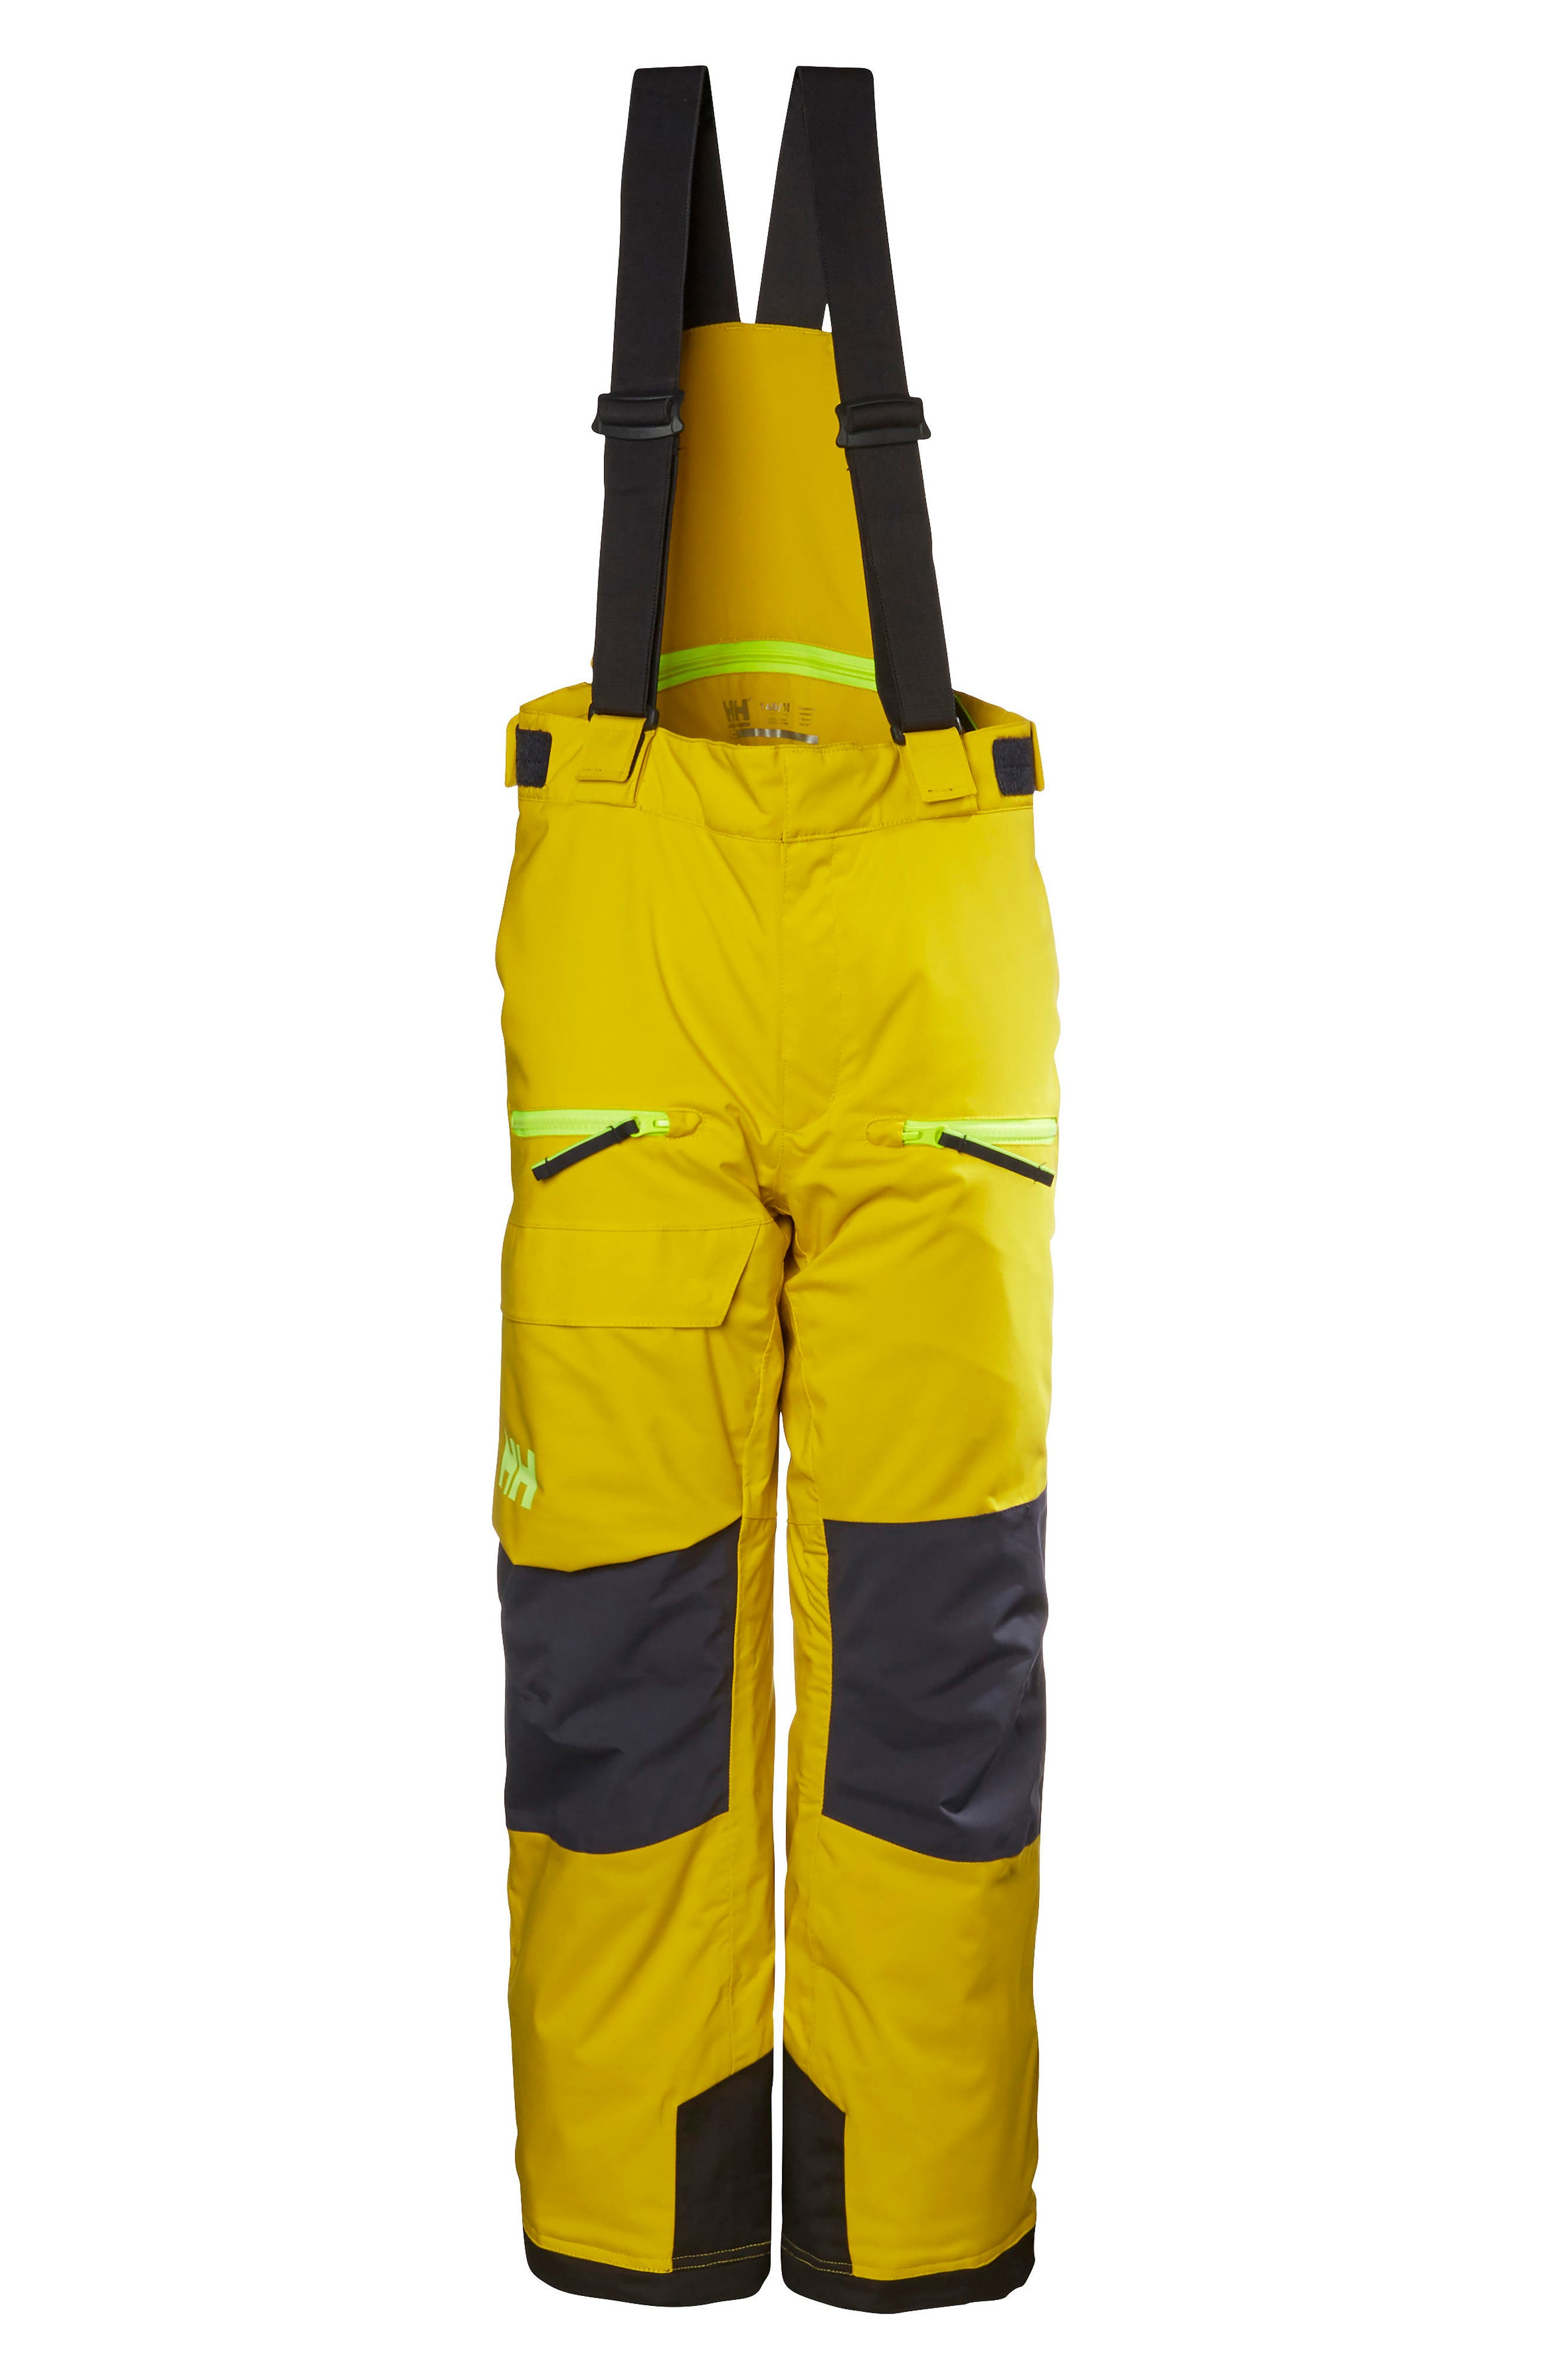 Alternate Image 1 Selected - Helly Hansen Jr. Powder Waterproof Ski Pants (Big Boys)